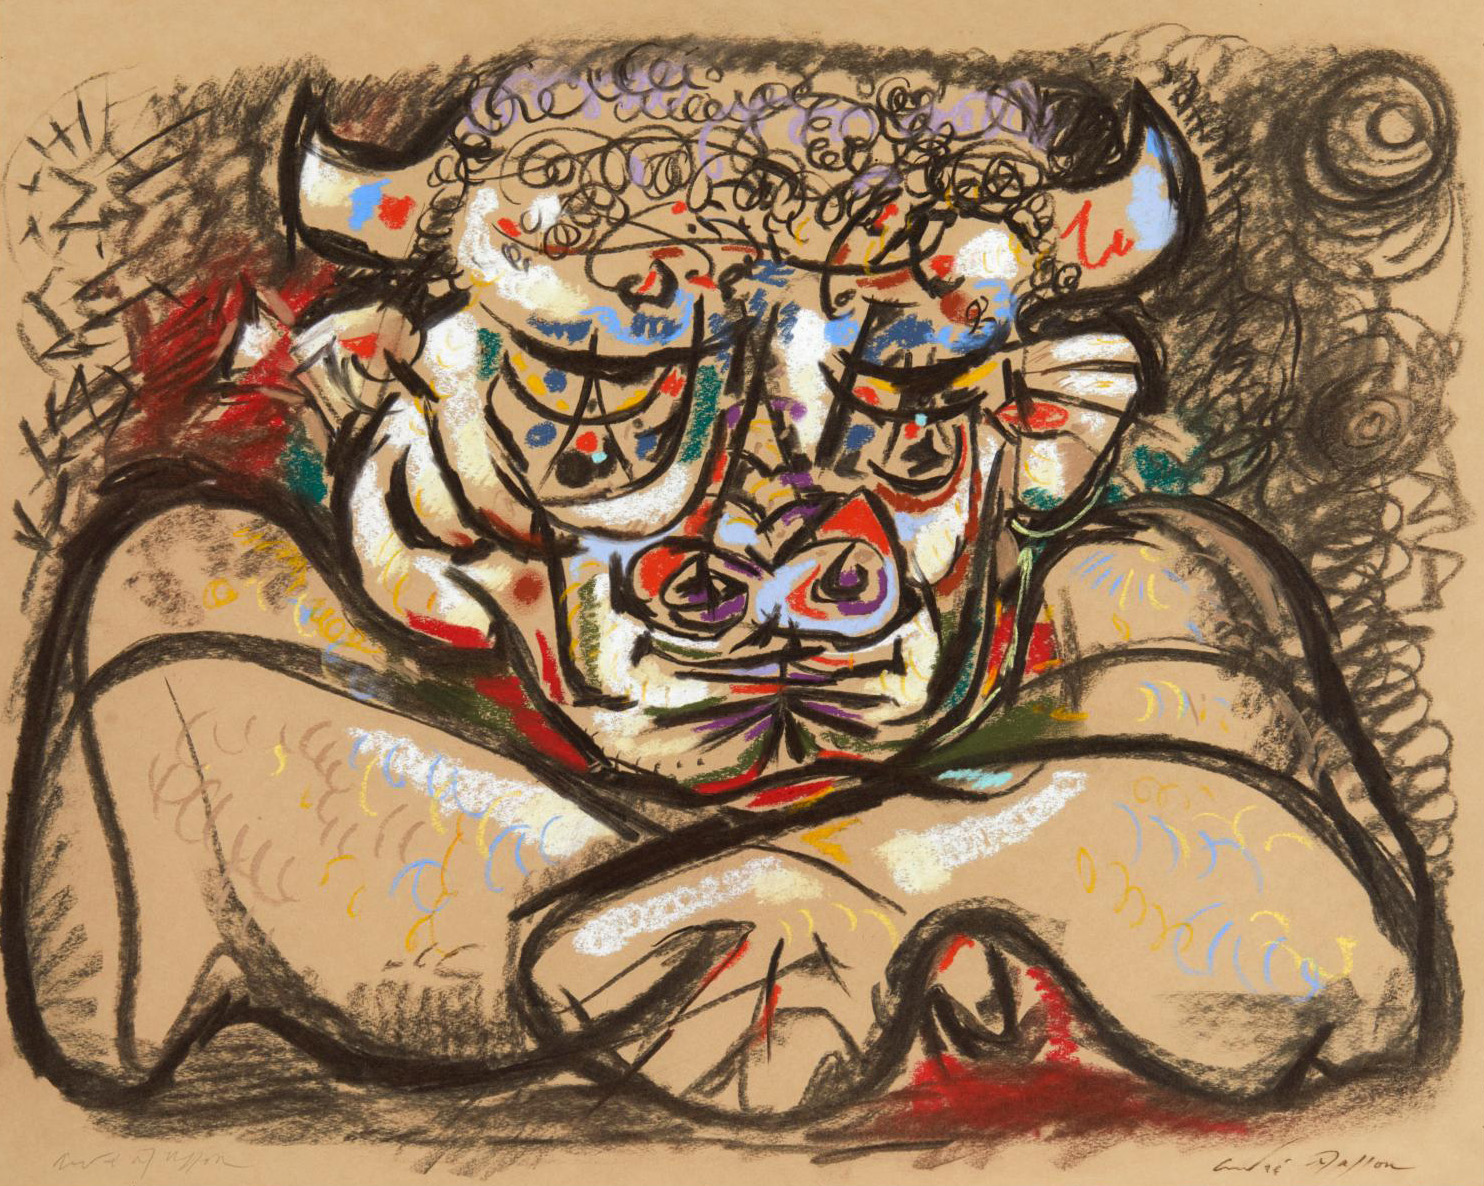 """André Masson (1896-1987), Le Minotaure (""""The Minotaur""""), 1942, pastel, signed twice on the front in pencil and ink, 52 x 66 cm (20.48 x 25"""